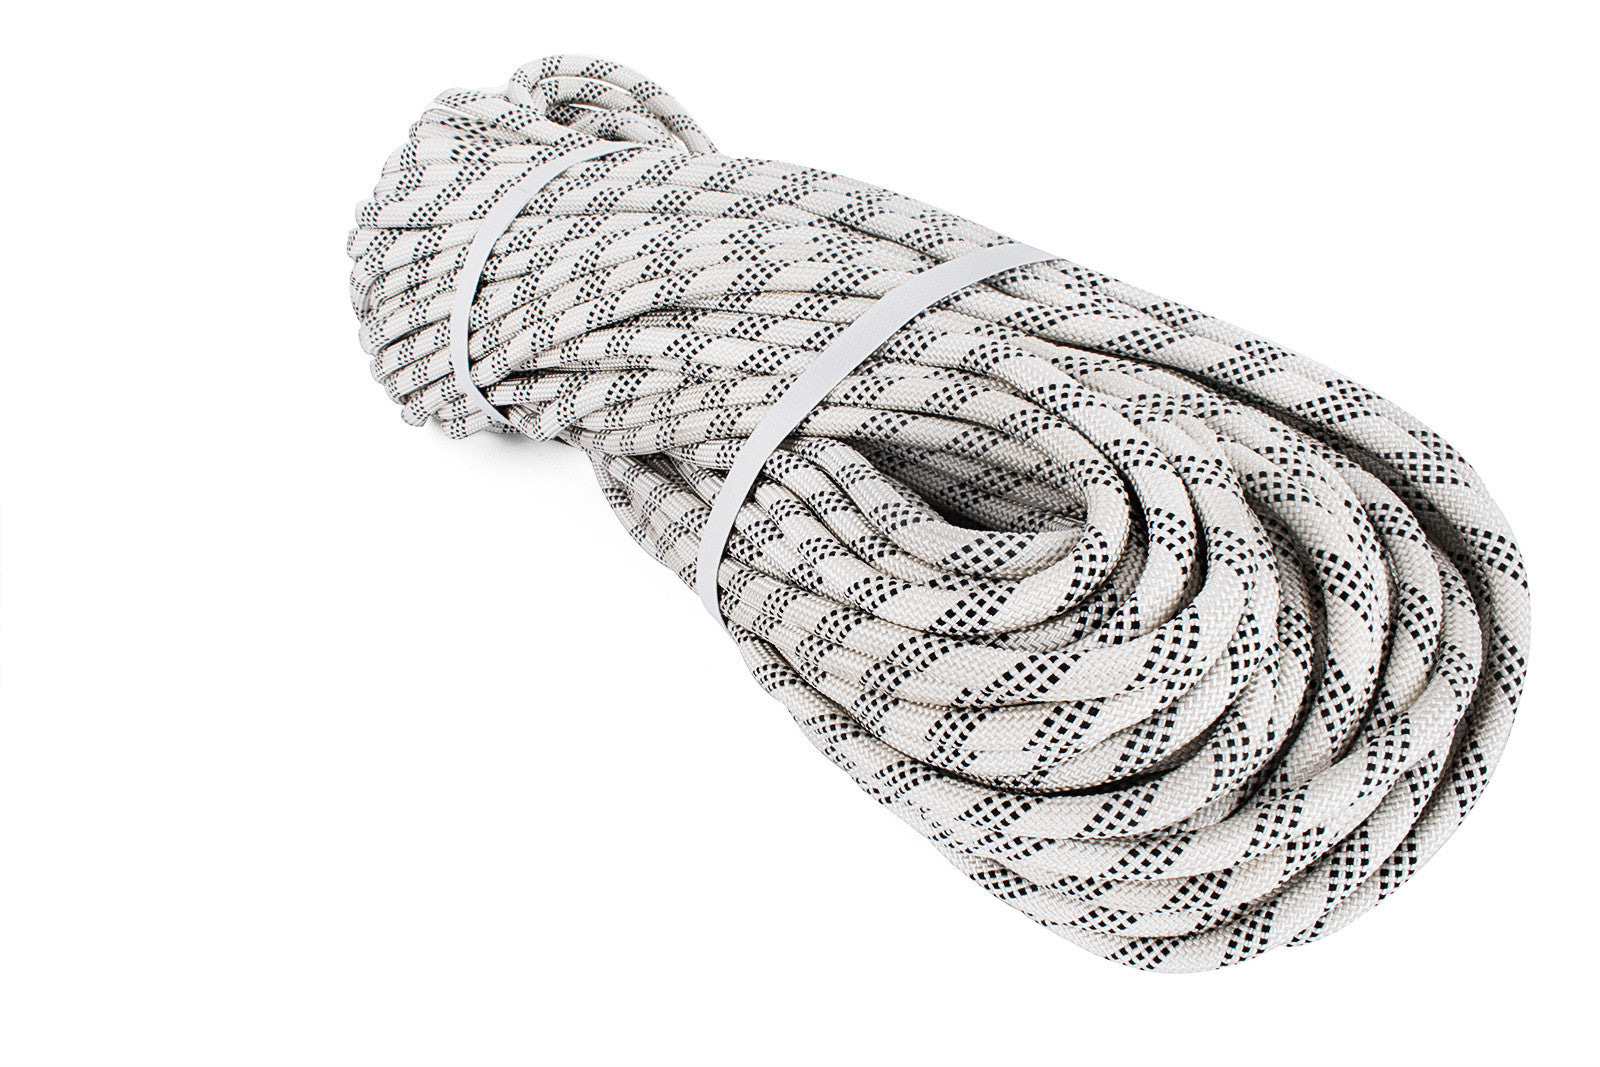 Durable Static Rope10.5mm 50m Robust Nylon Rope White With Black